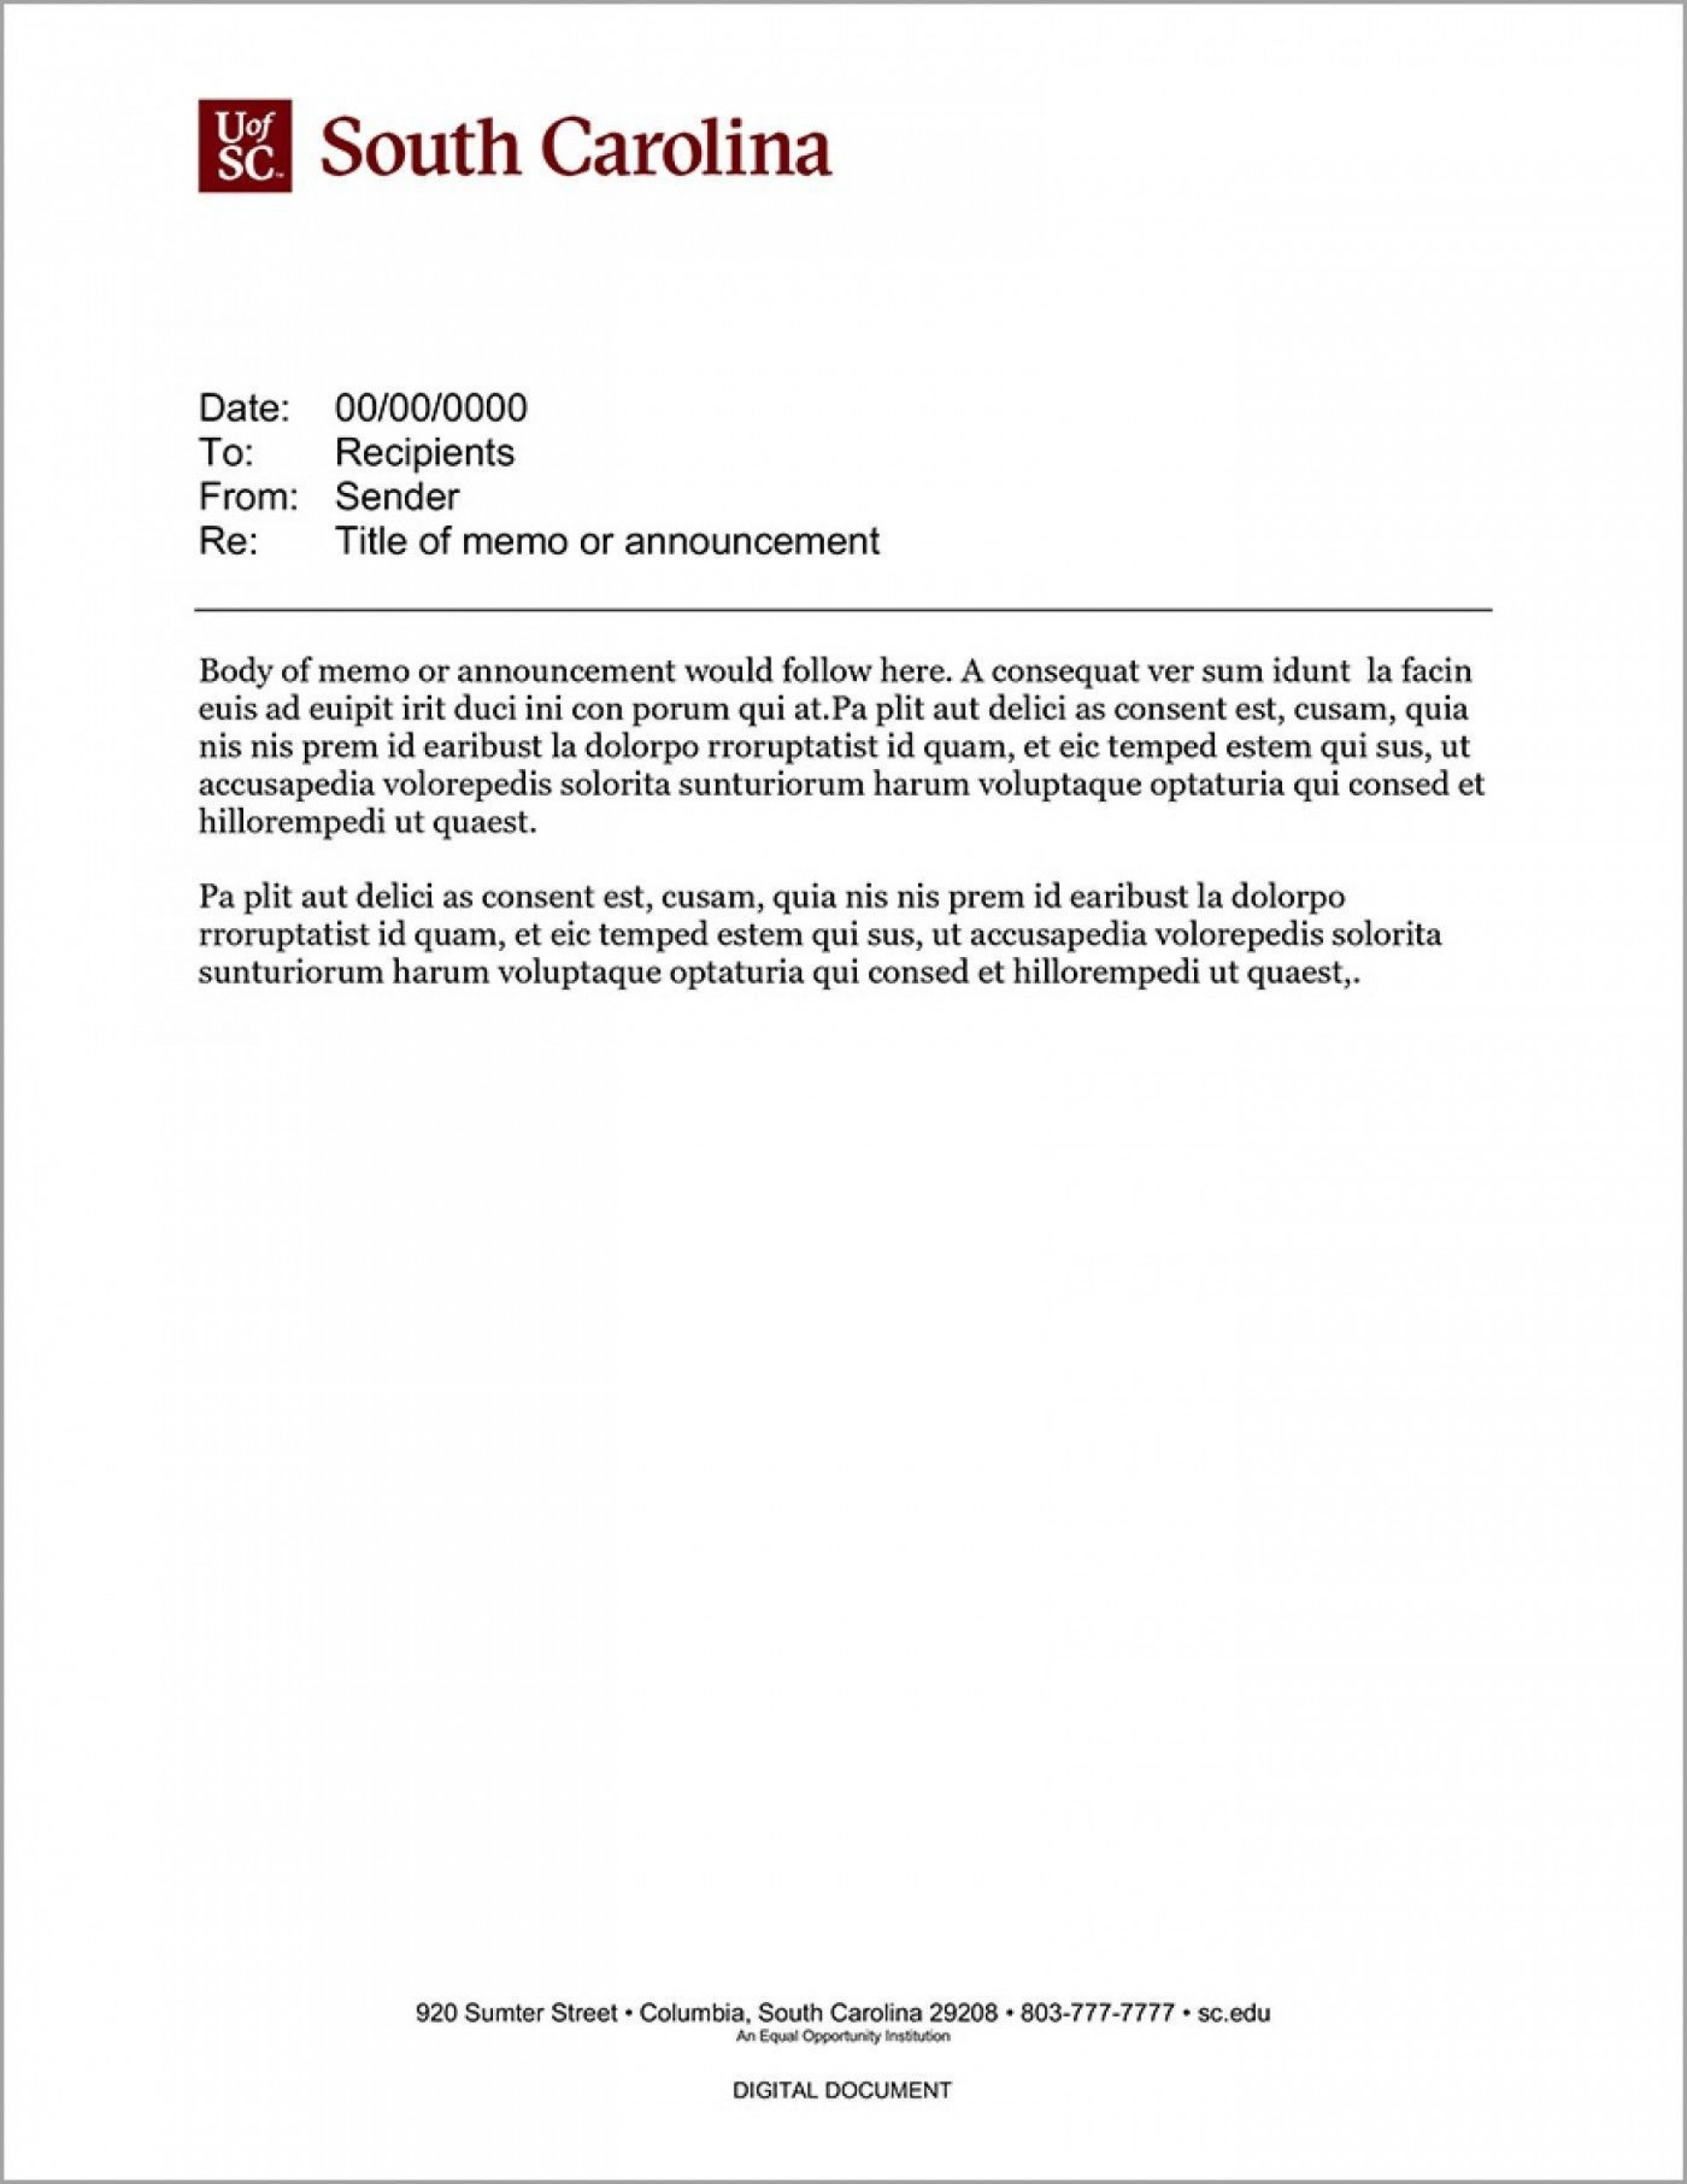 004 Fascinating Memo Template For Word High Definition  Free Cash Sample 20131920